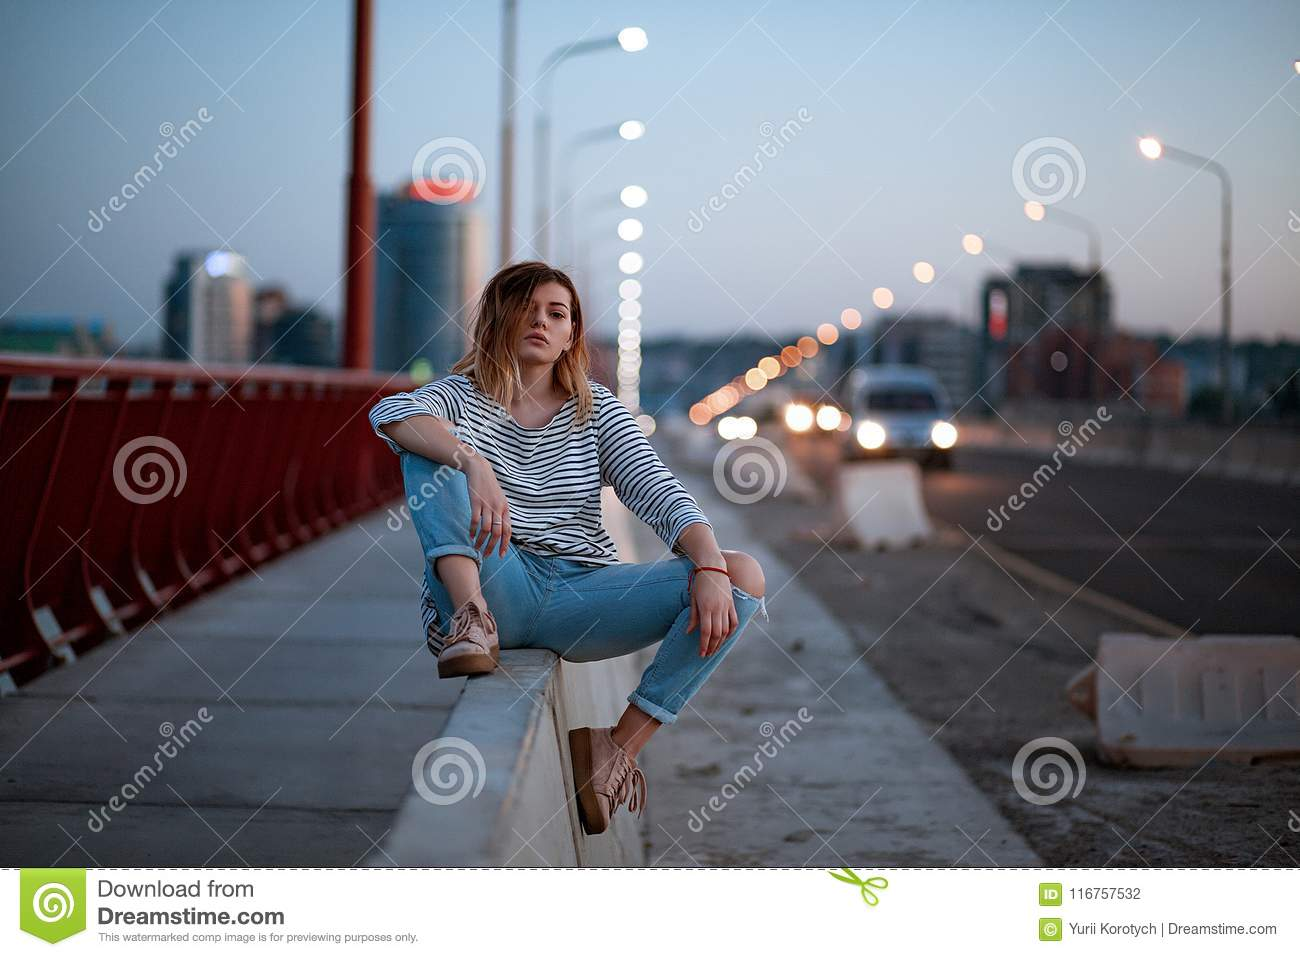 The girl is sitting on the divider near the cars on the bridge